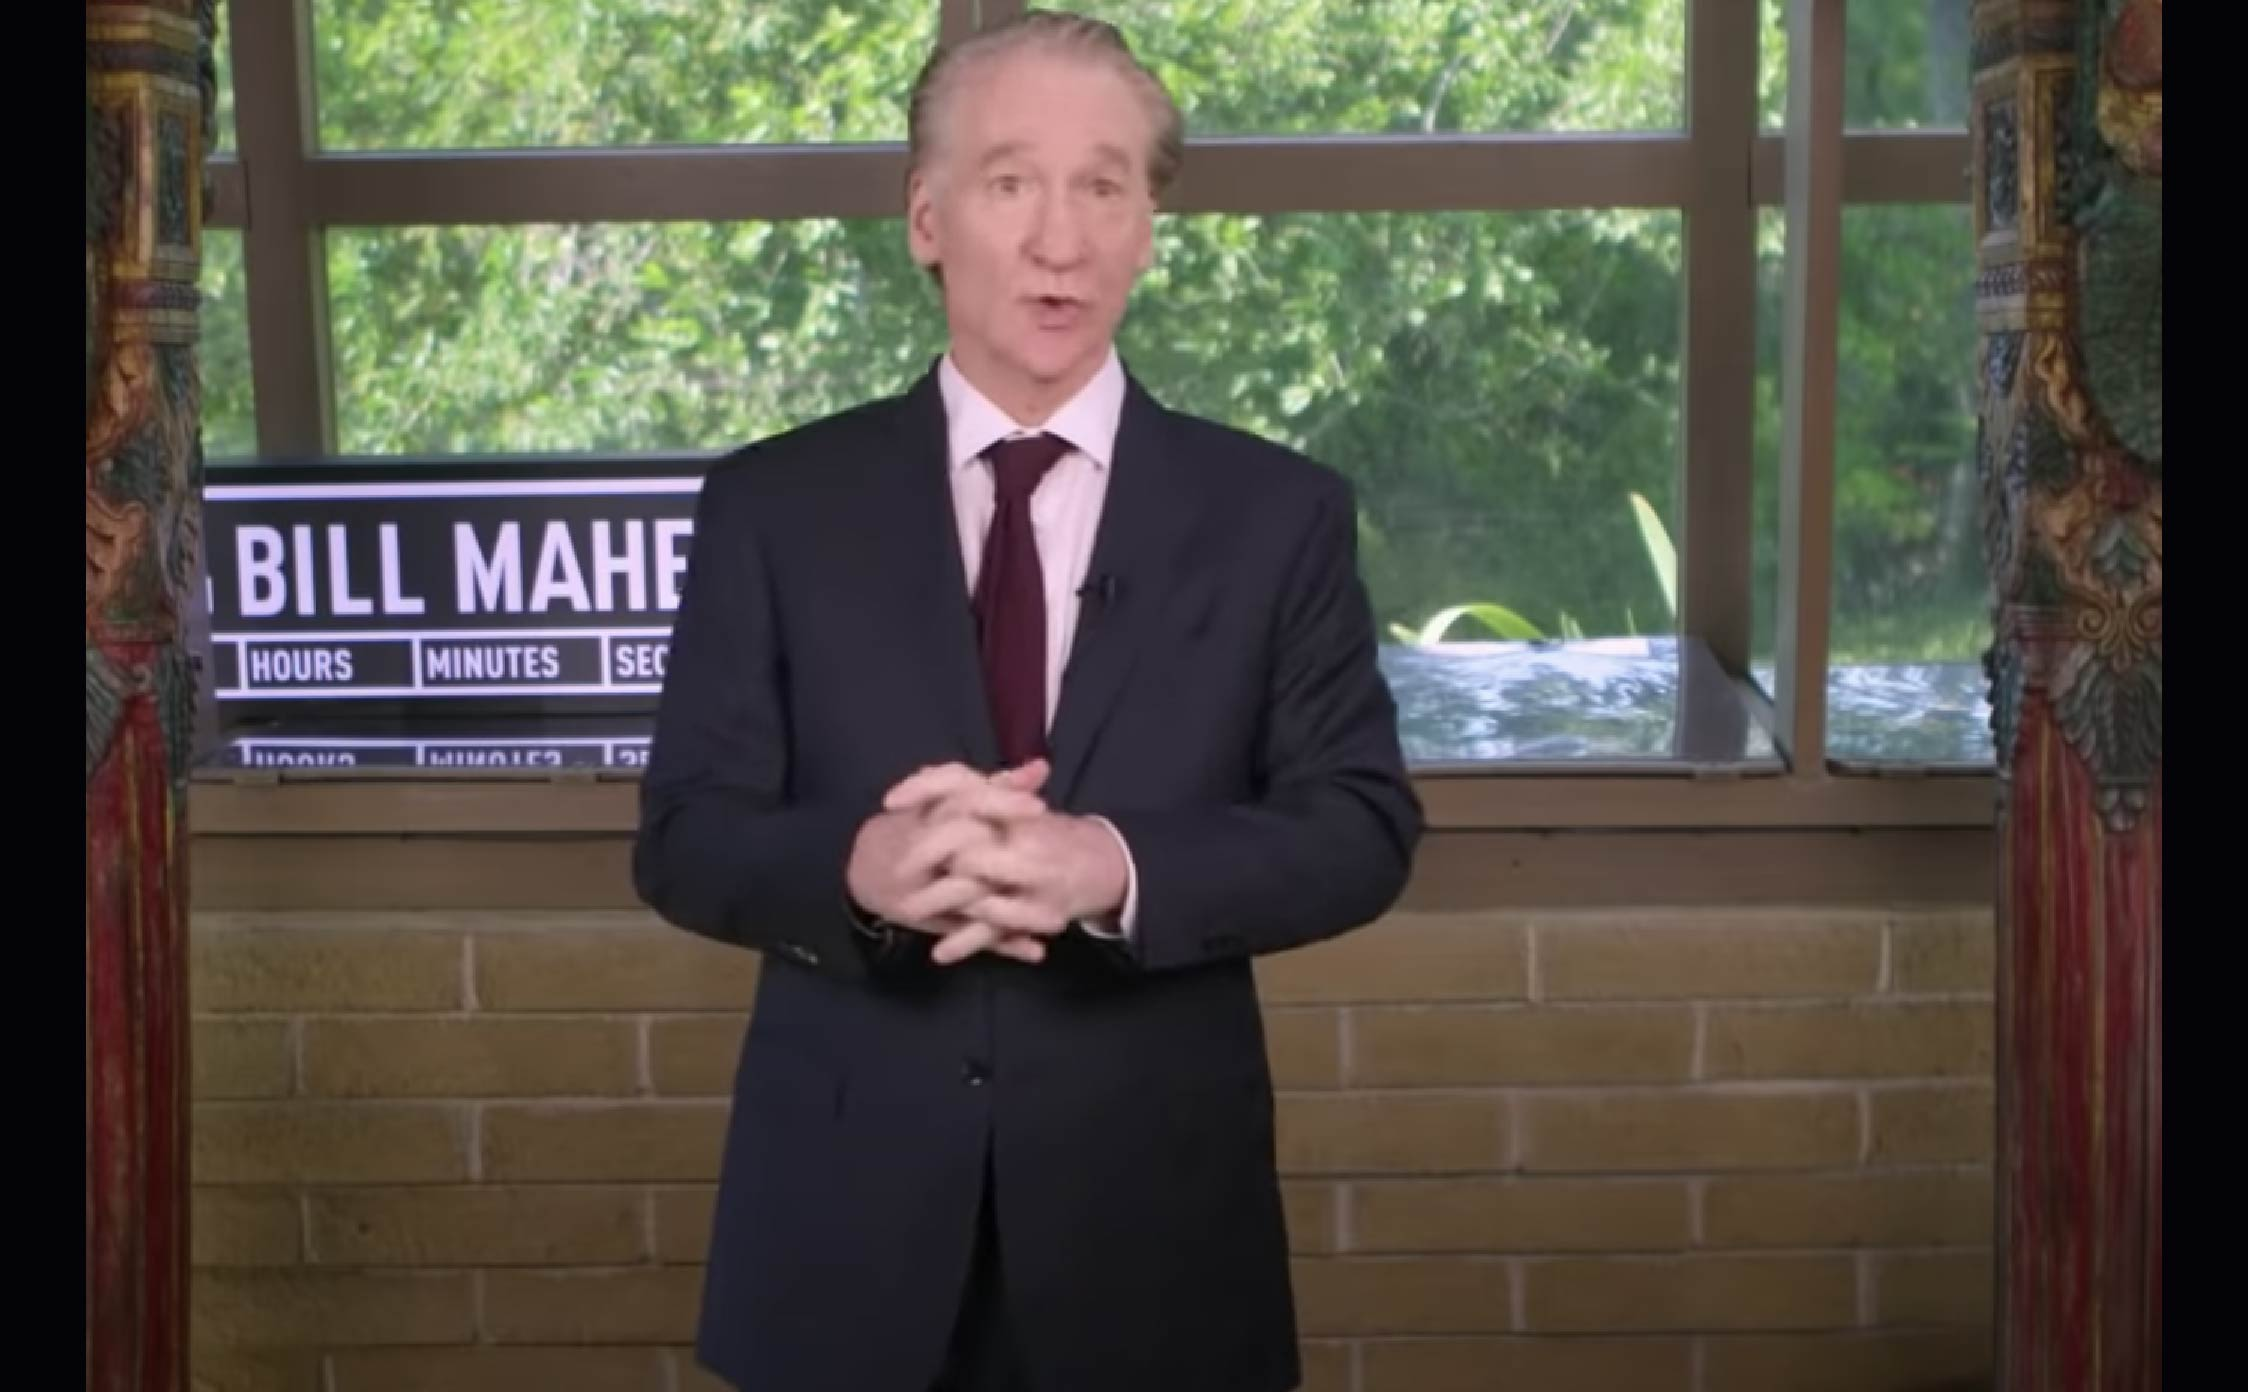 """[VIDEO] Bill Maher Horrified By Cringeworthy DNC Convention...Compares it to Watching a """"2 AM Jerry Lewis Telethon"""""""